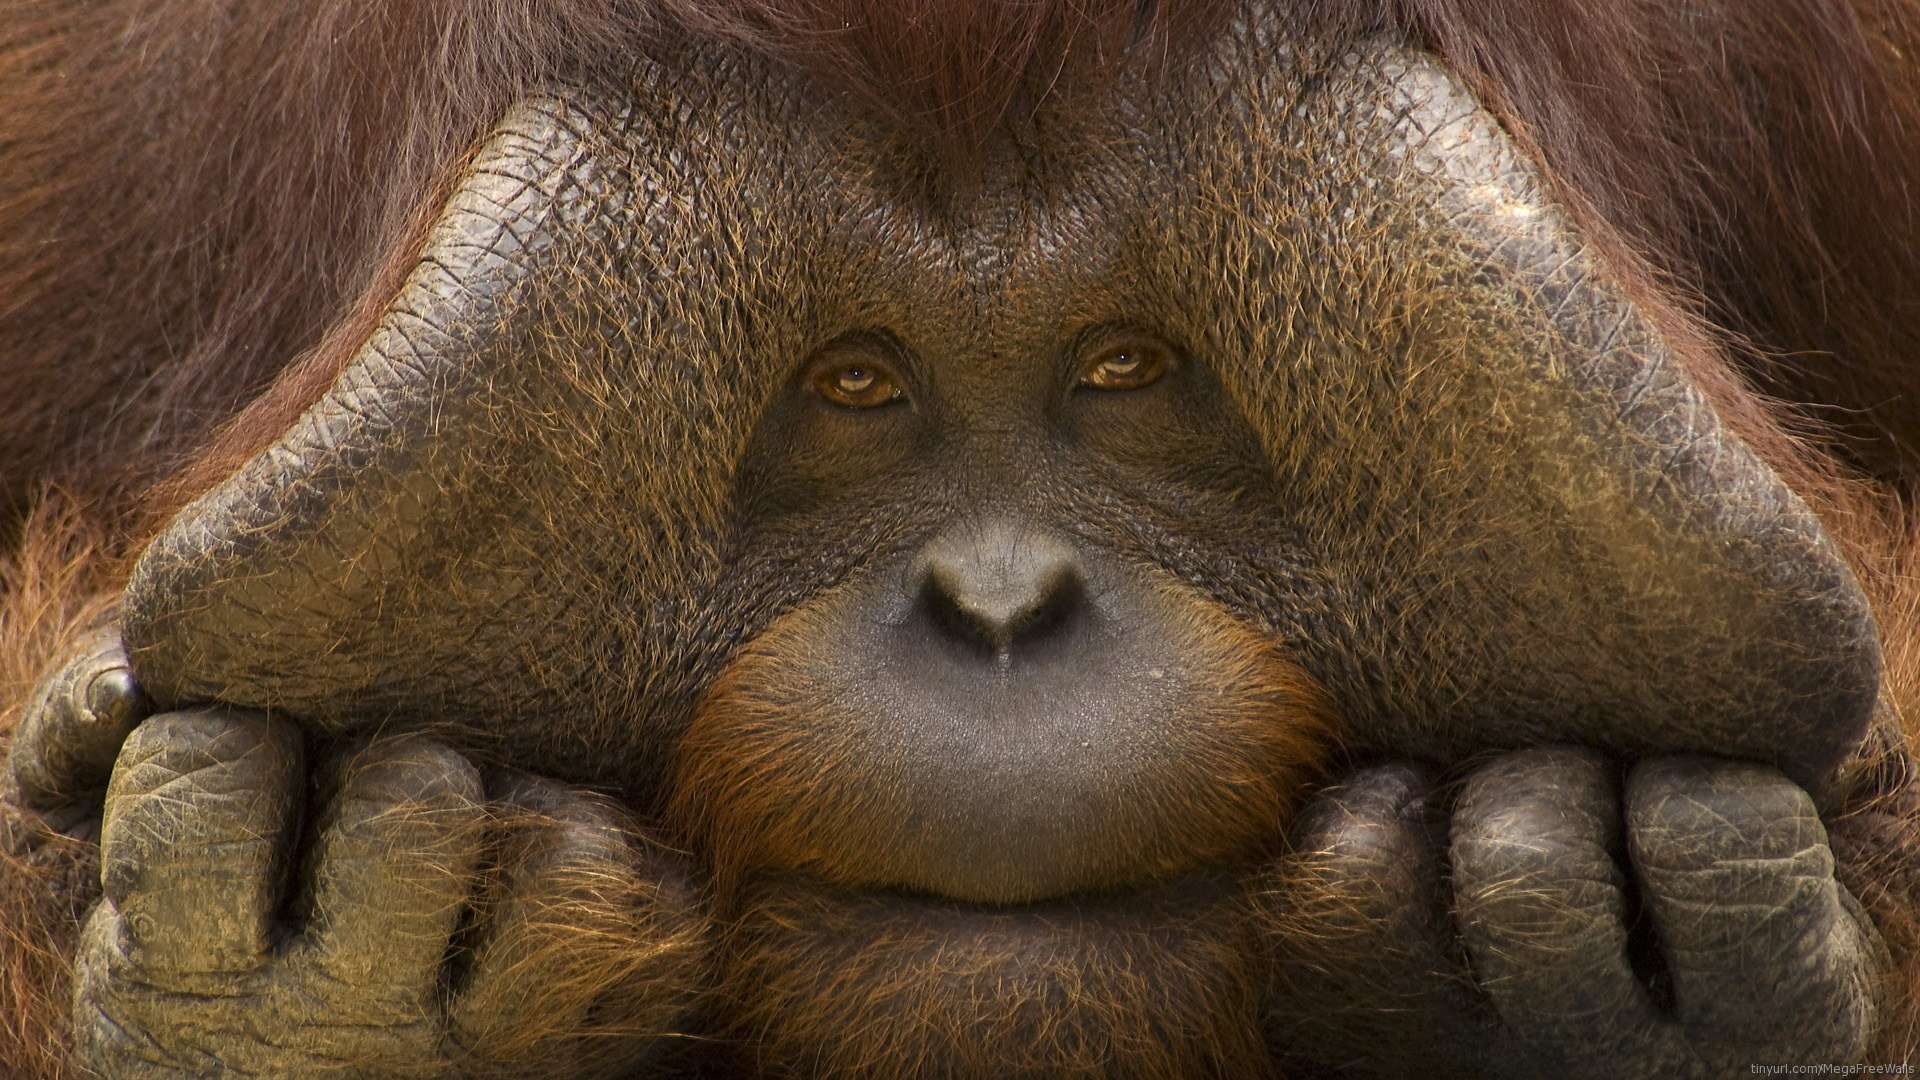 Download hd 1080p Orangutan computer wallpaper ID:70049 for free